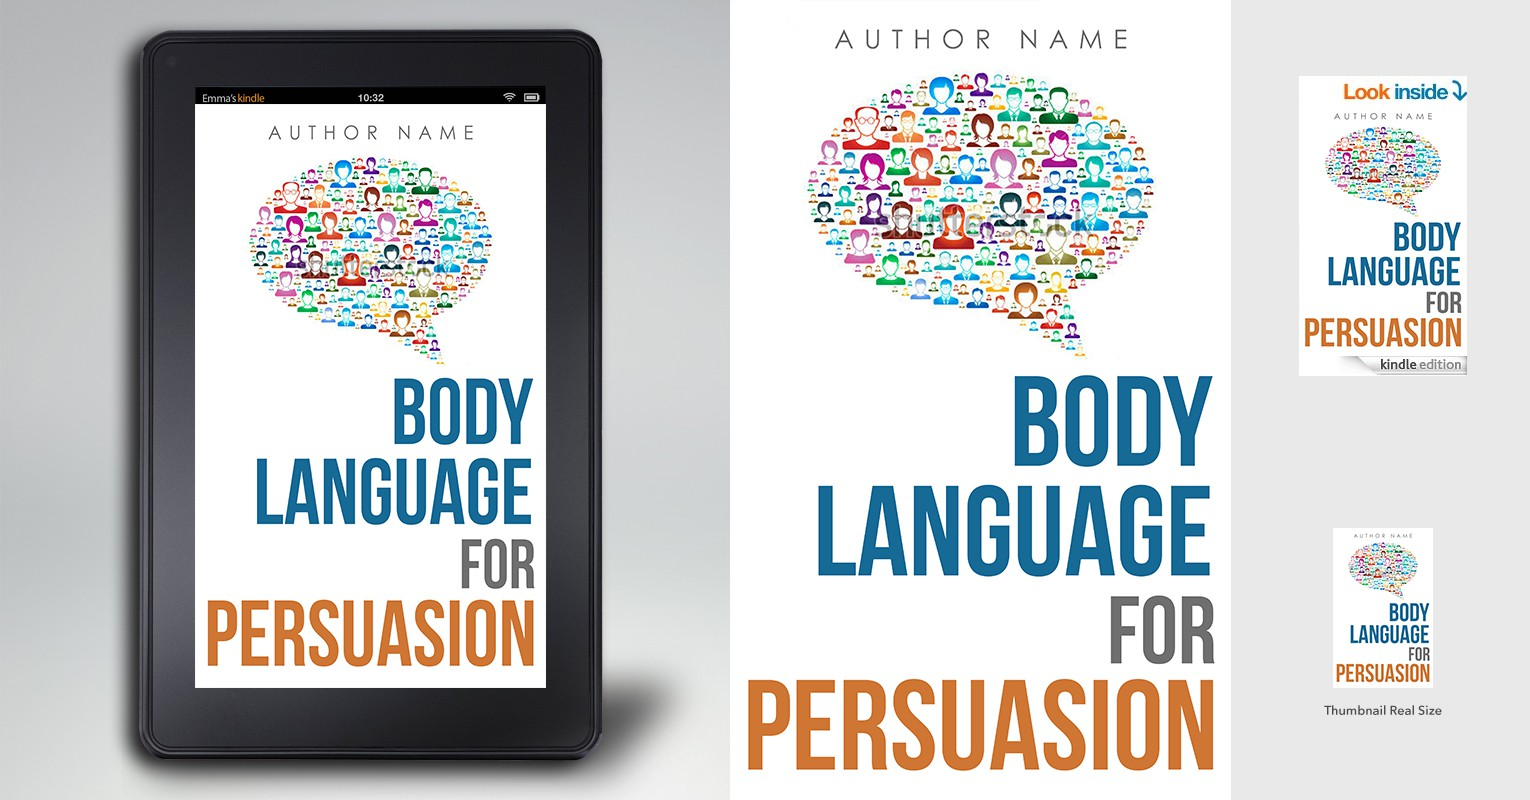 Design an eBook cover for a subconscious, body language communication method